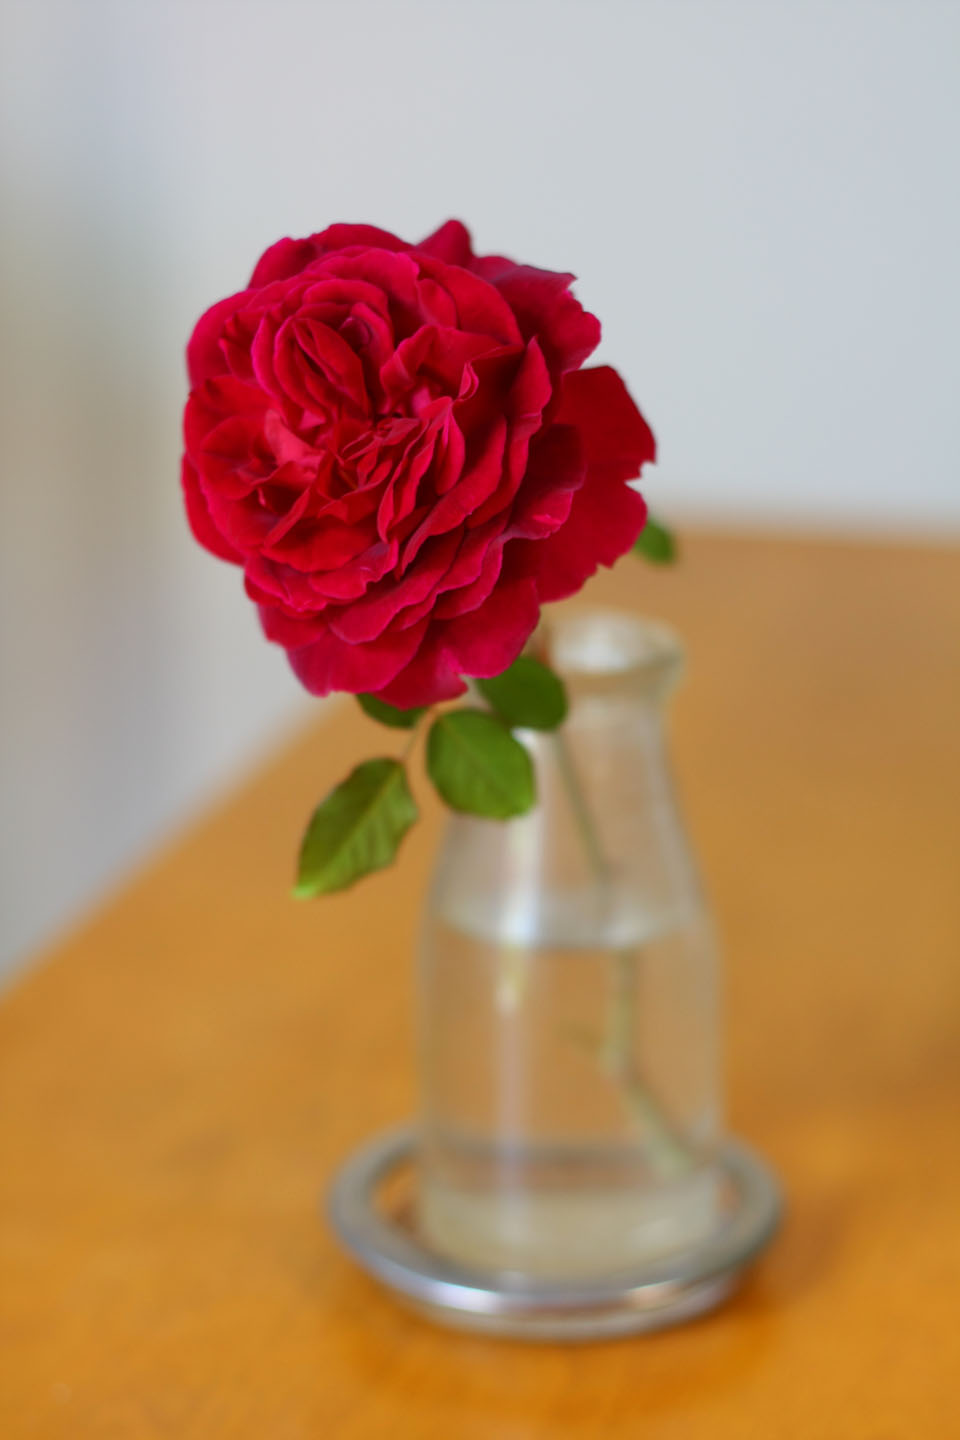 The Most Fragrant Red Rose